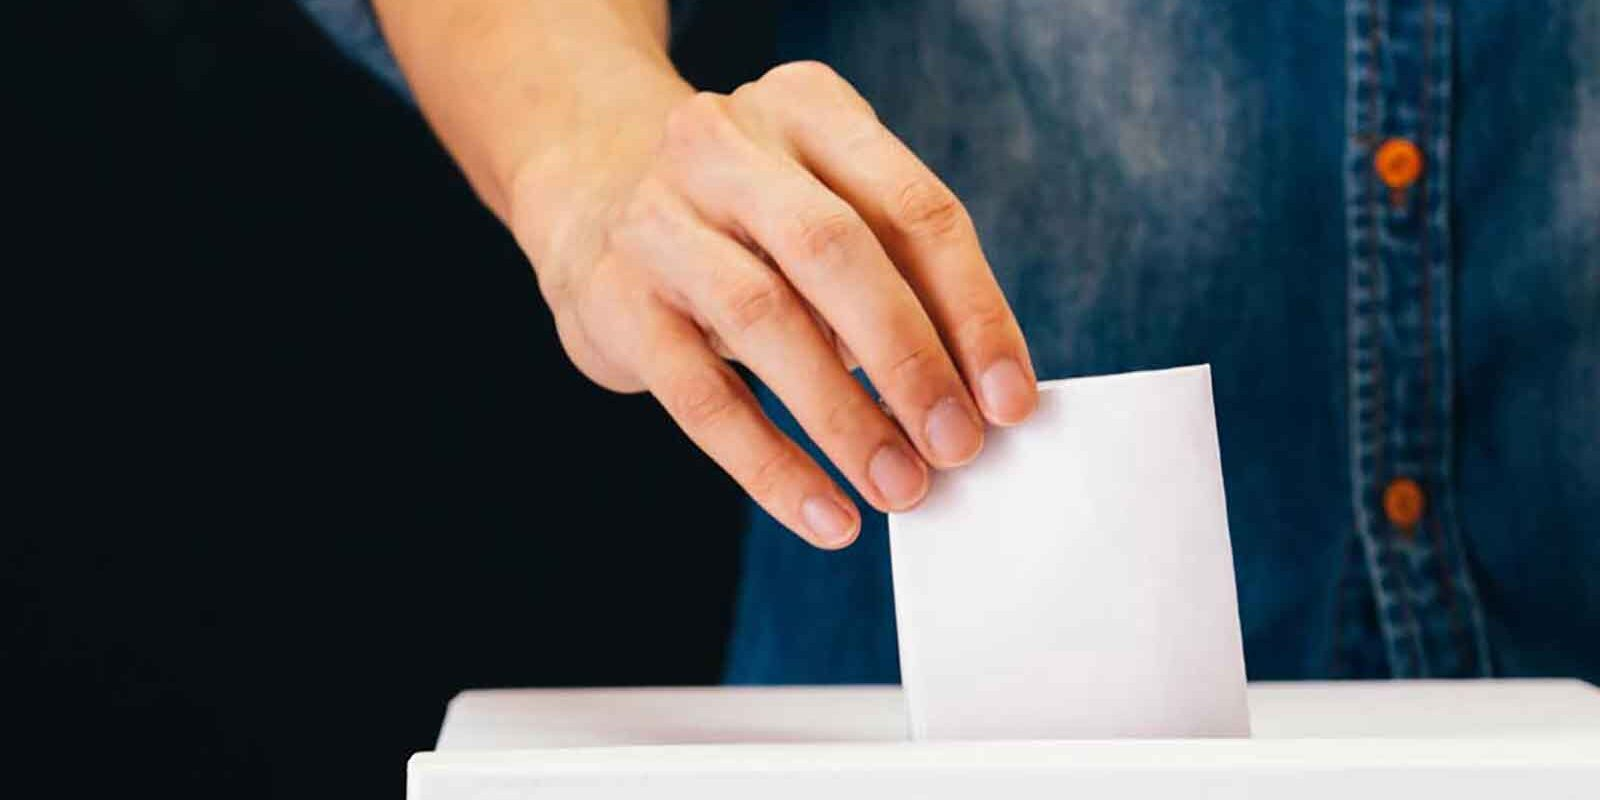 Hand putting ballot in ballot box